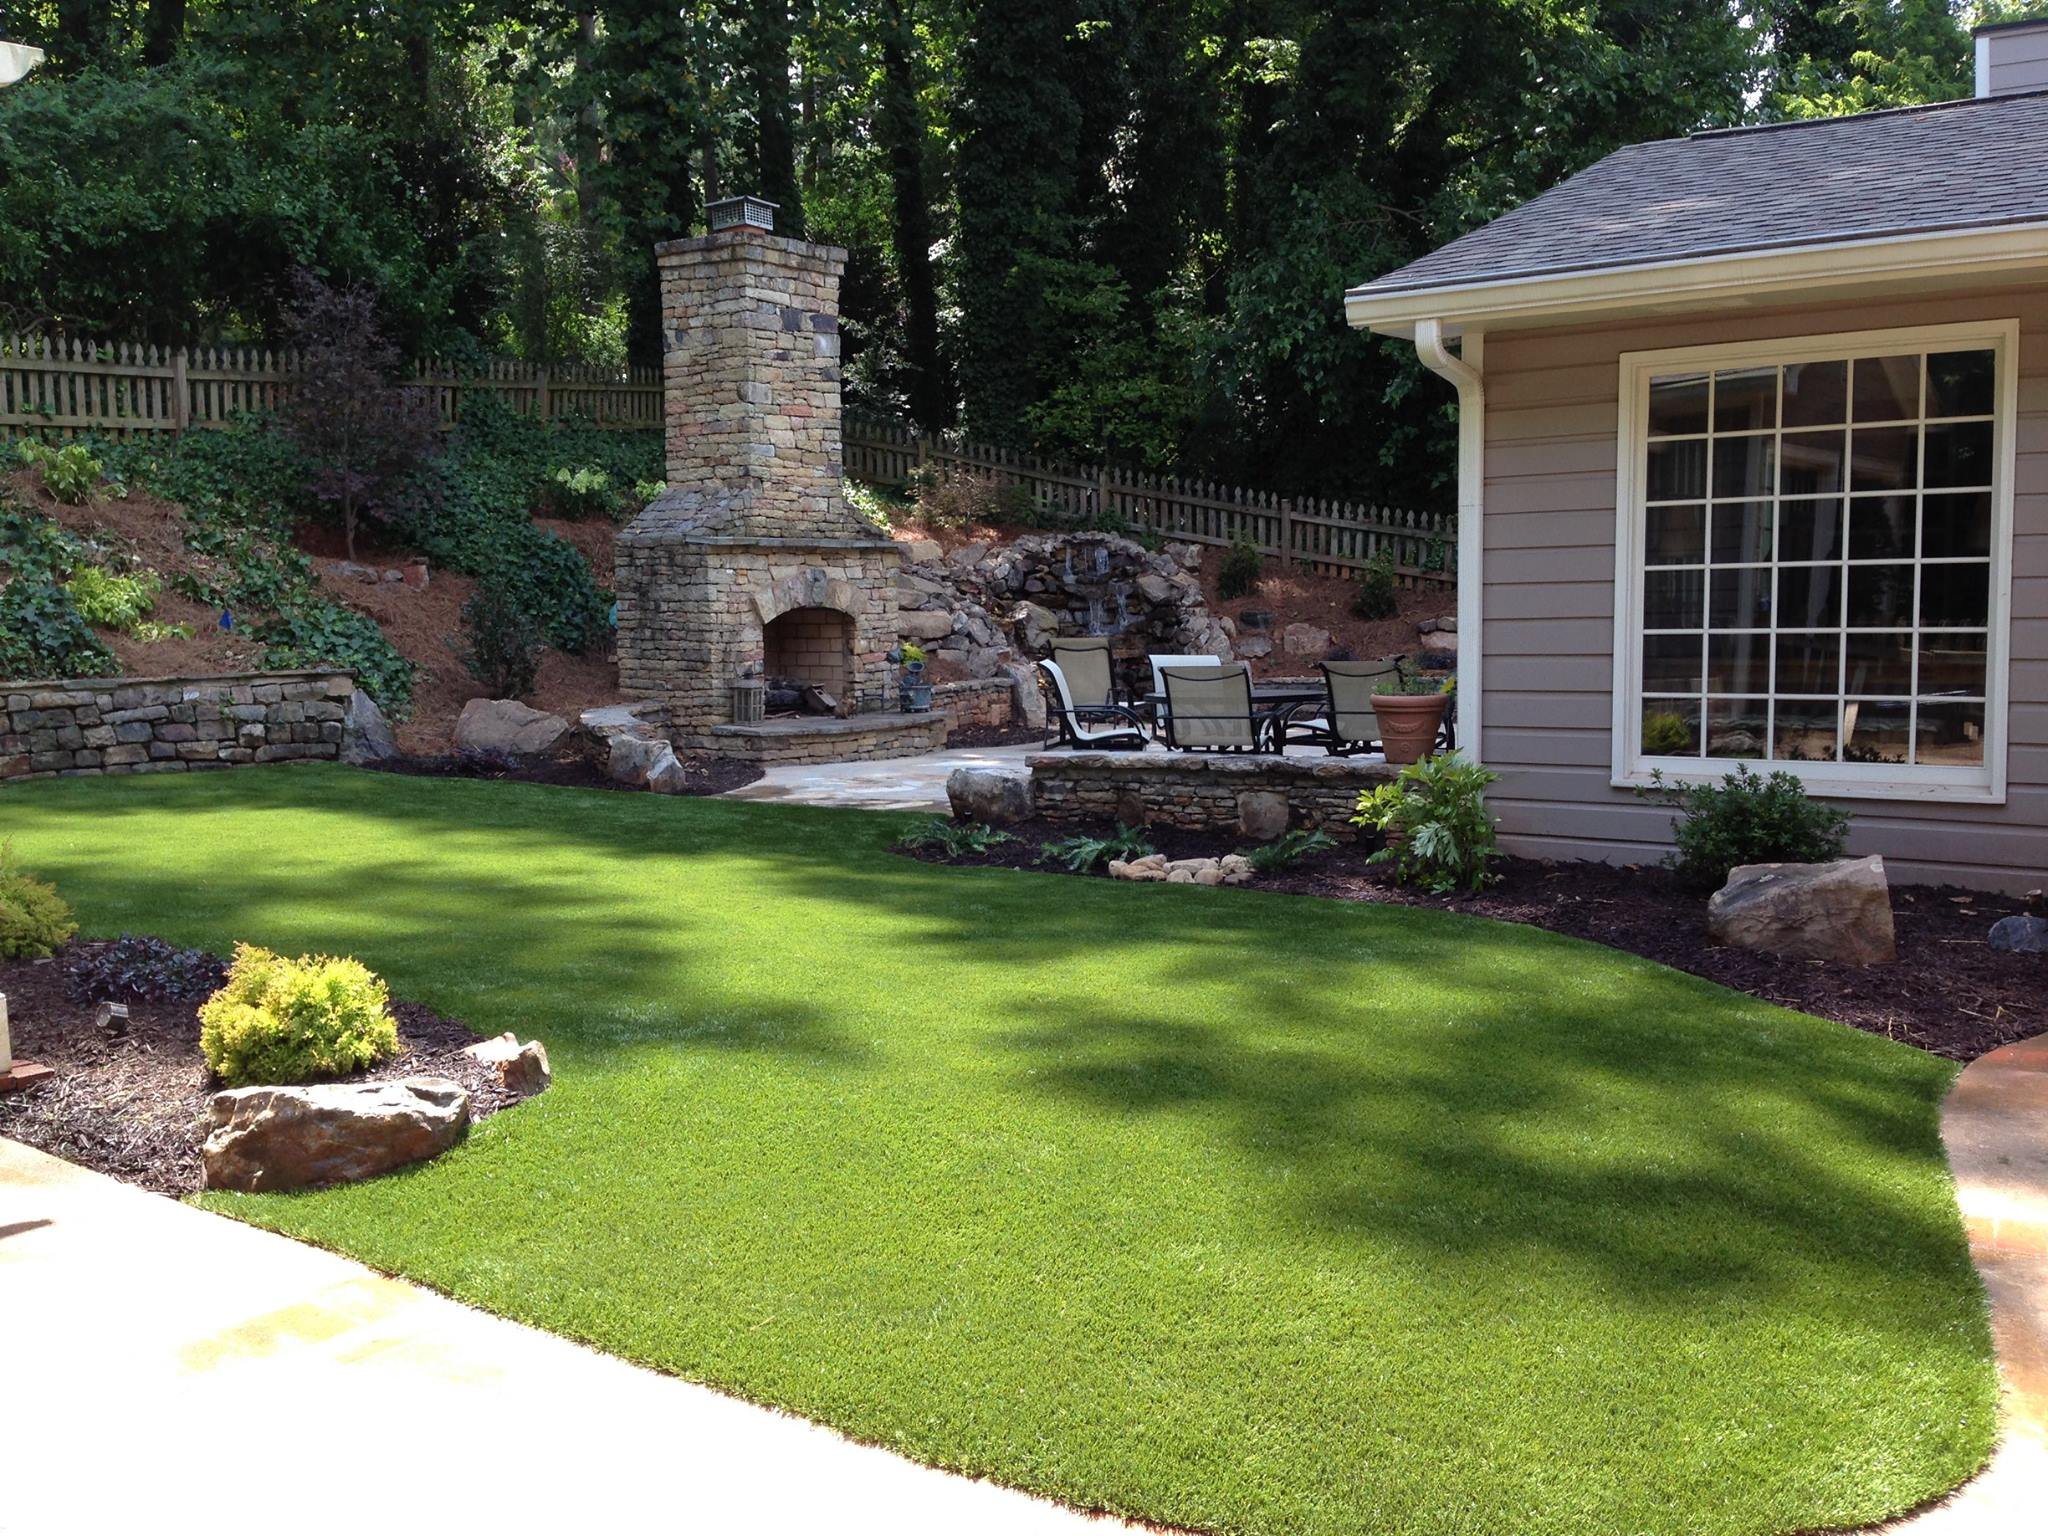 SoftLawn® Lawn & Landscaping | Synthetic Turf International